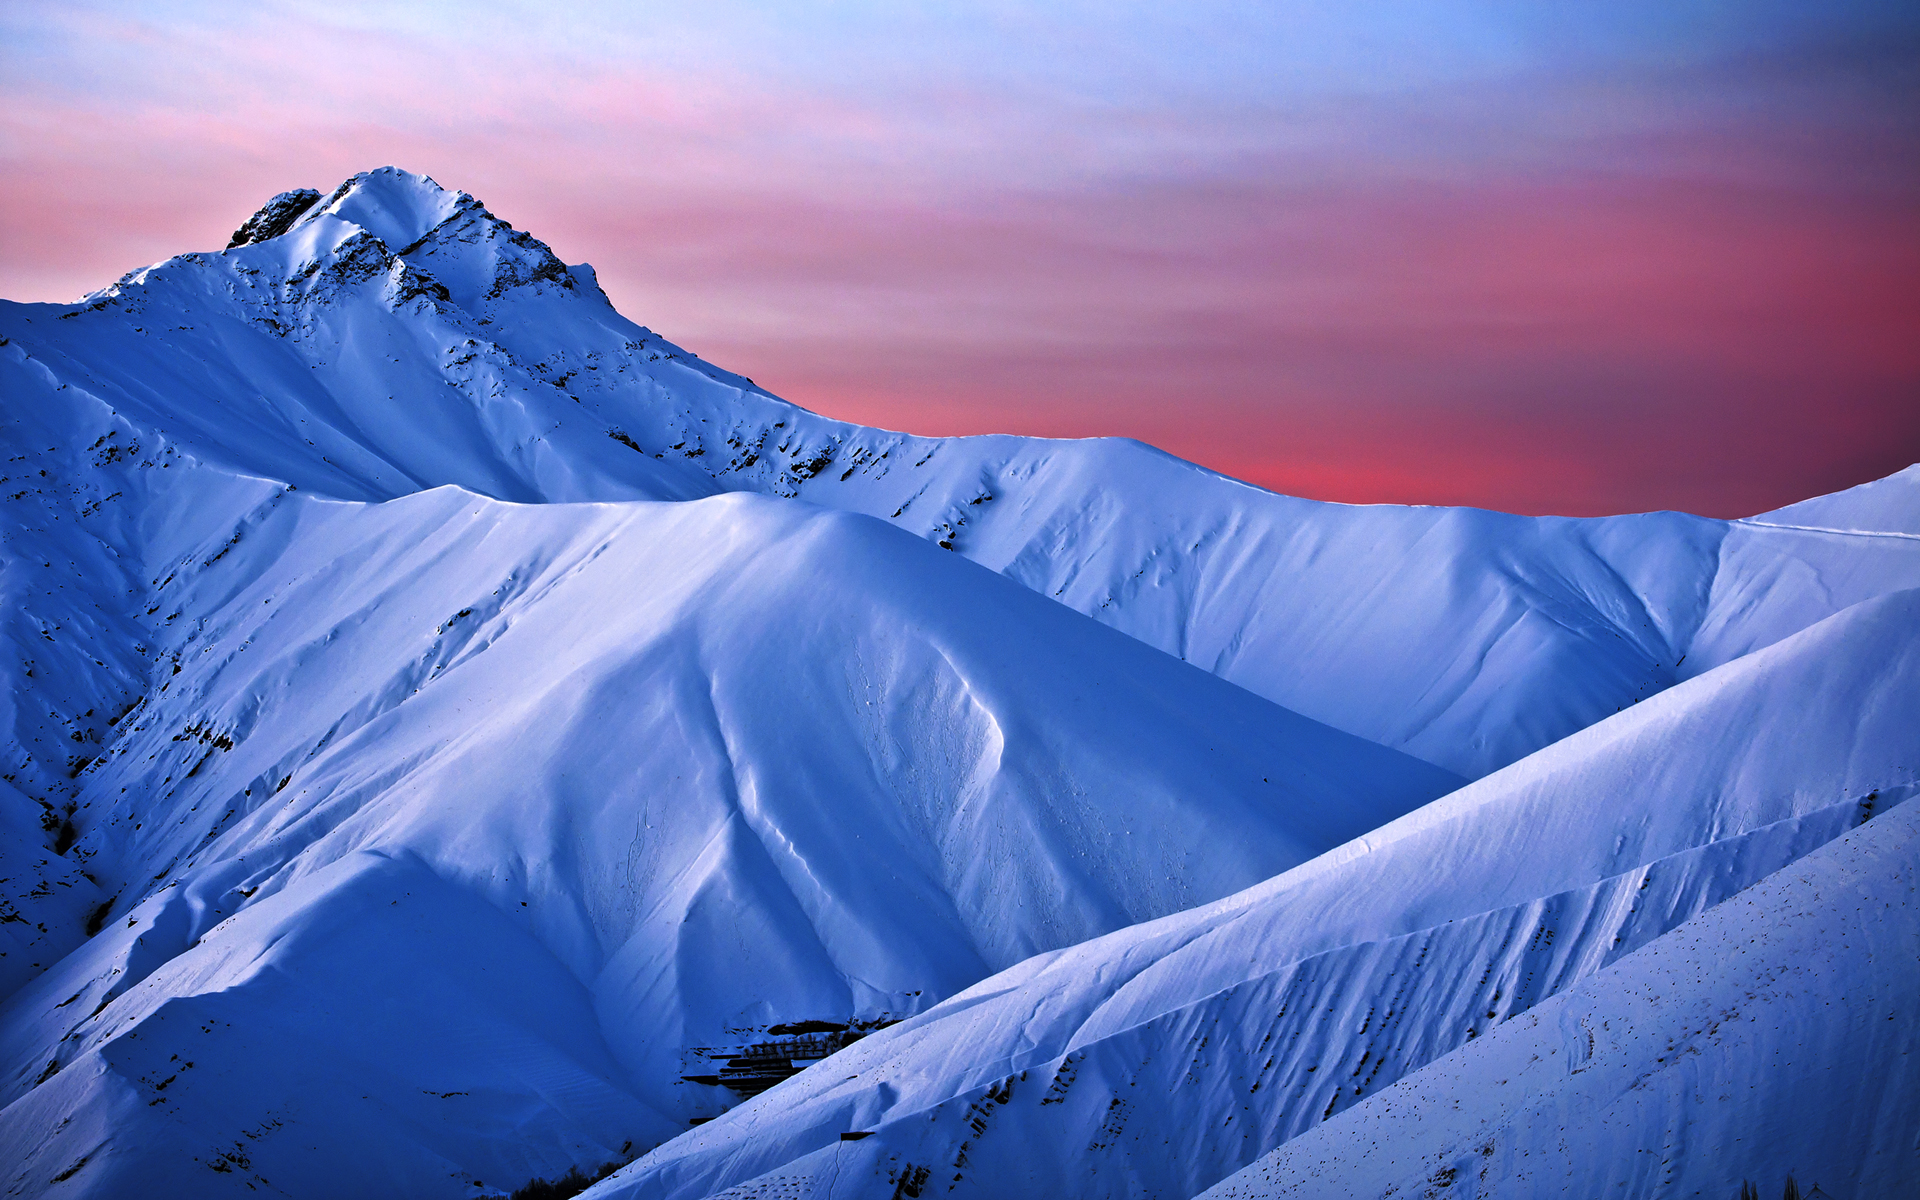 Snowy slopes and pink-blue sky.